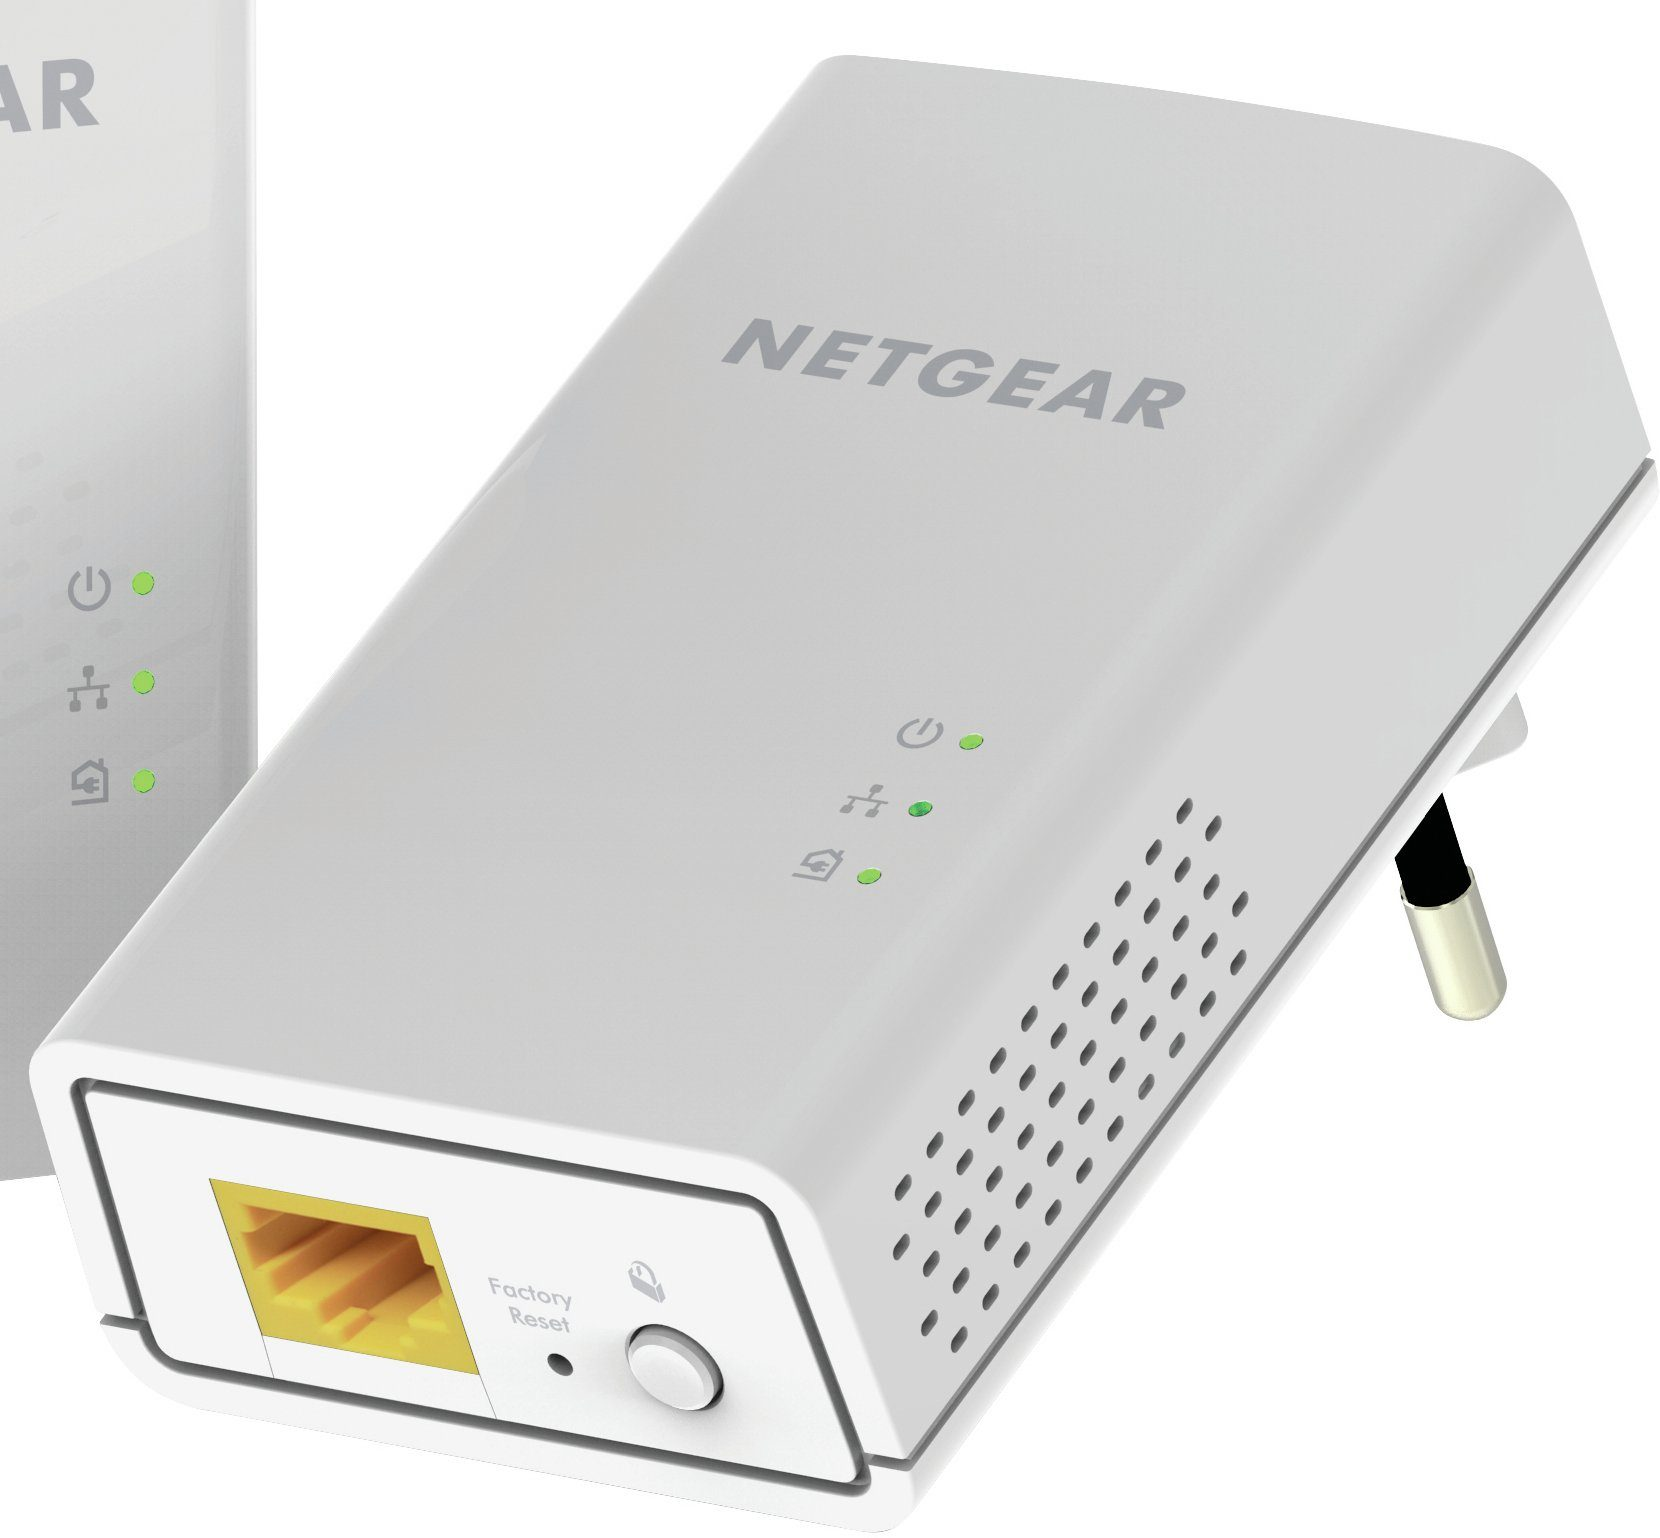 Netgear Powerline Adapter »POWERLINE 1000 ADAPTER SET OF «